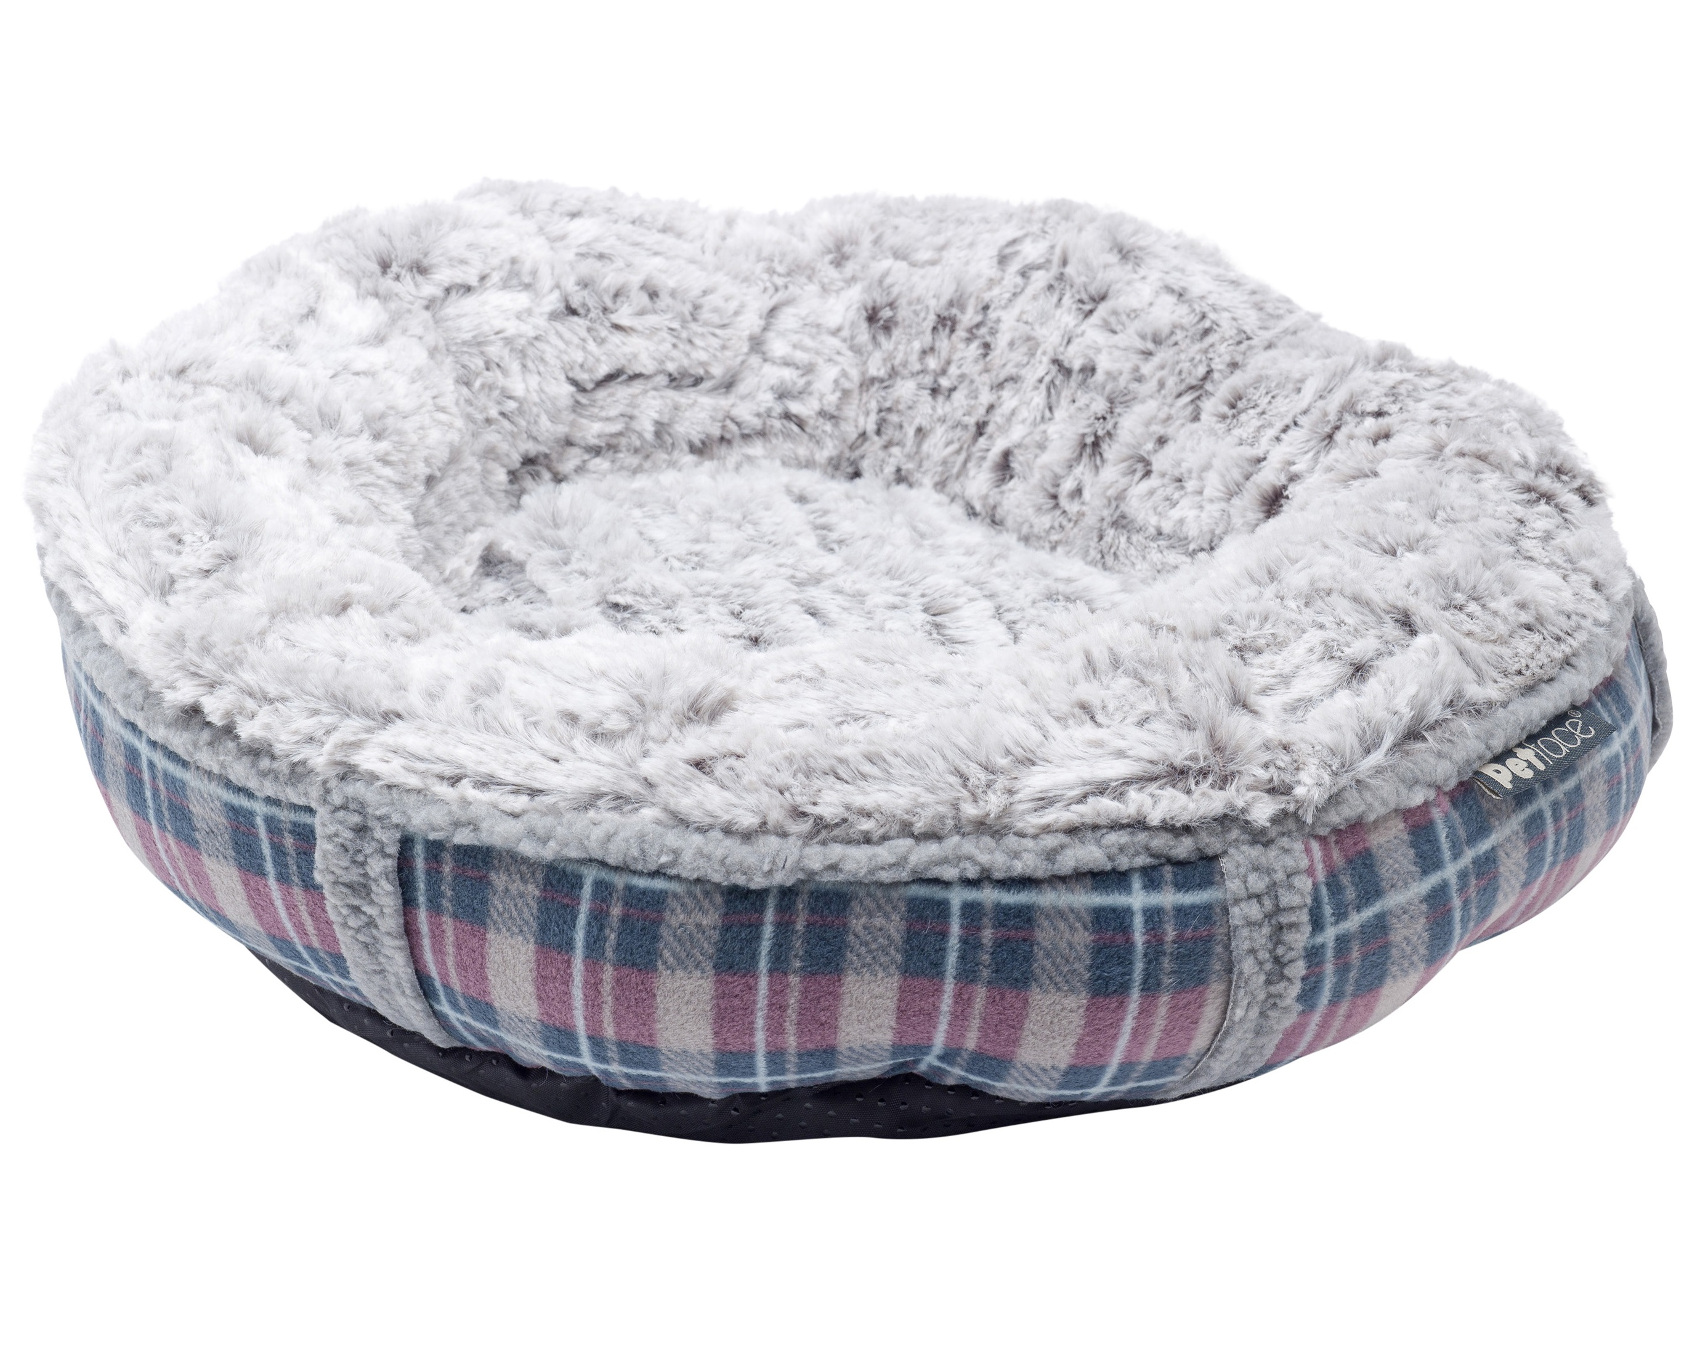 indestructible comfort for proof clean ped tough and bed ideas with supplies decor dog large also chew pet beds